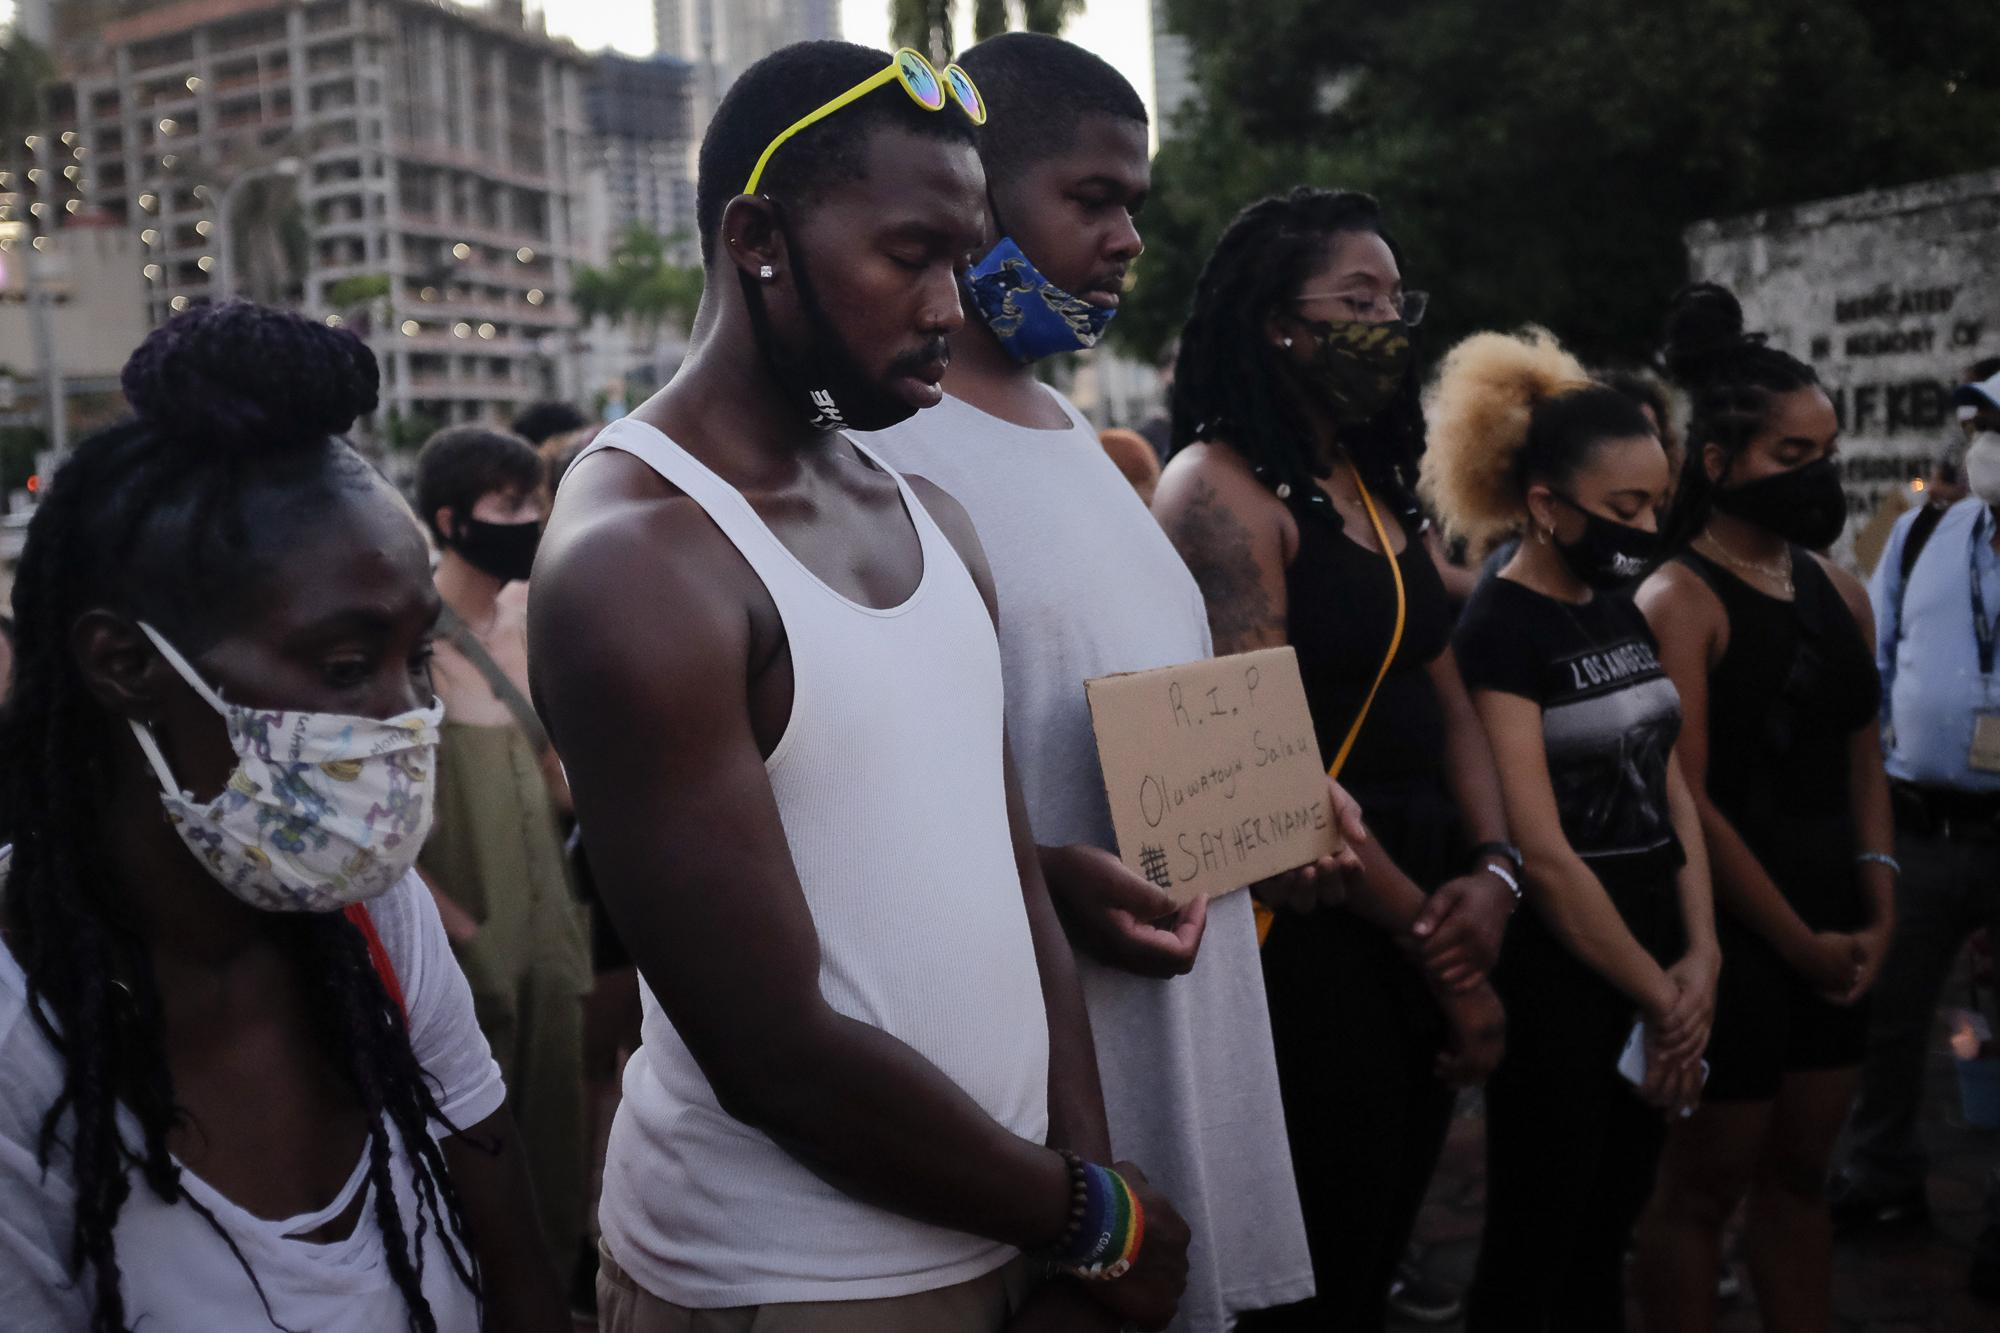 People attend a vigil for slain black activist Oluwatoyin Salau, in Downtown Miami, Florida, U.S., June 16, 2020. REUTERS/Marco Bello